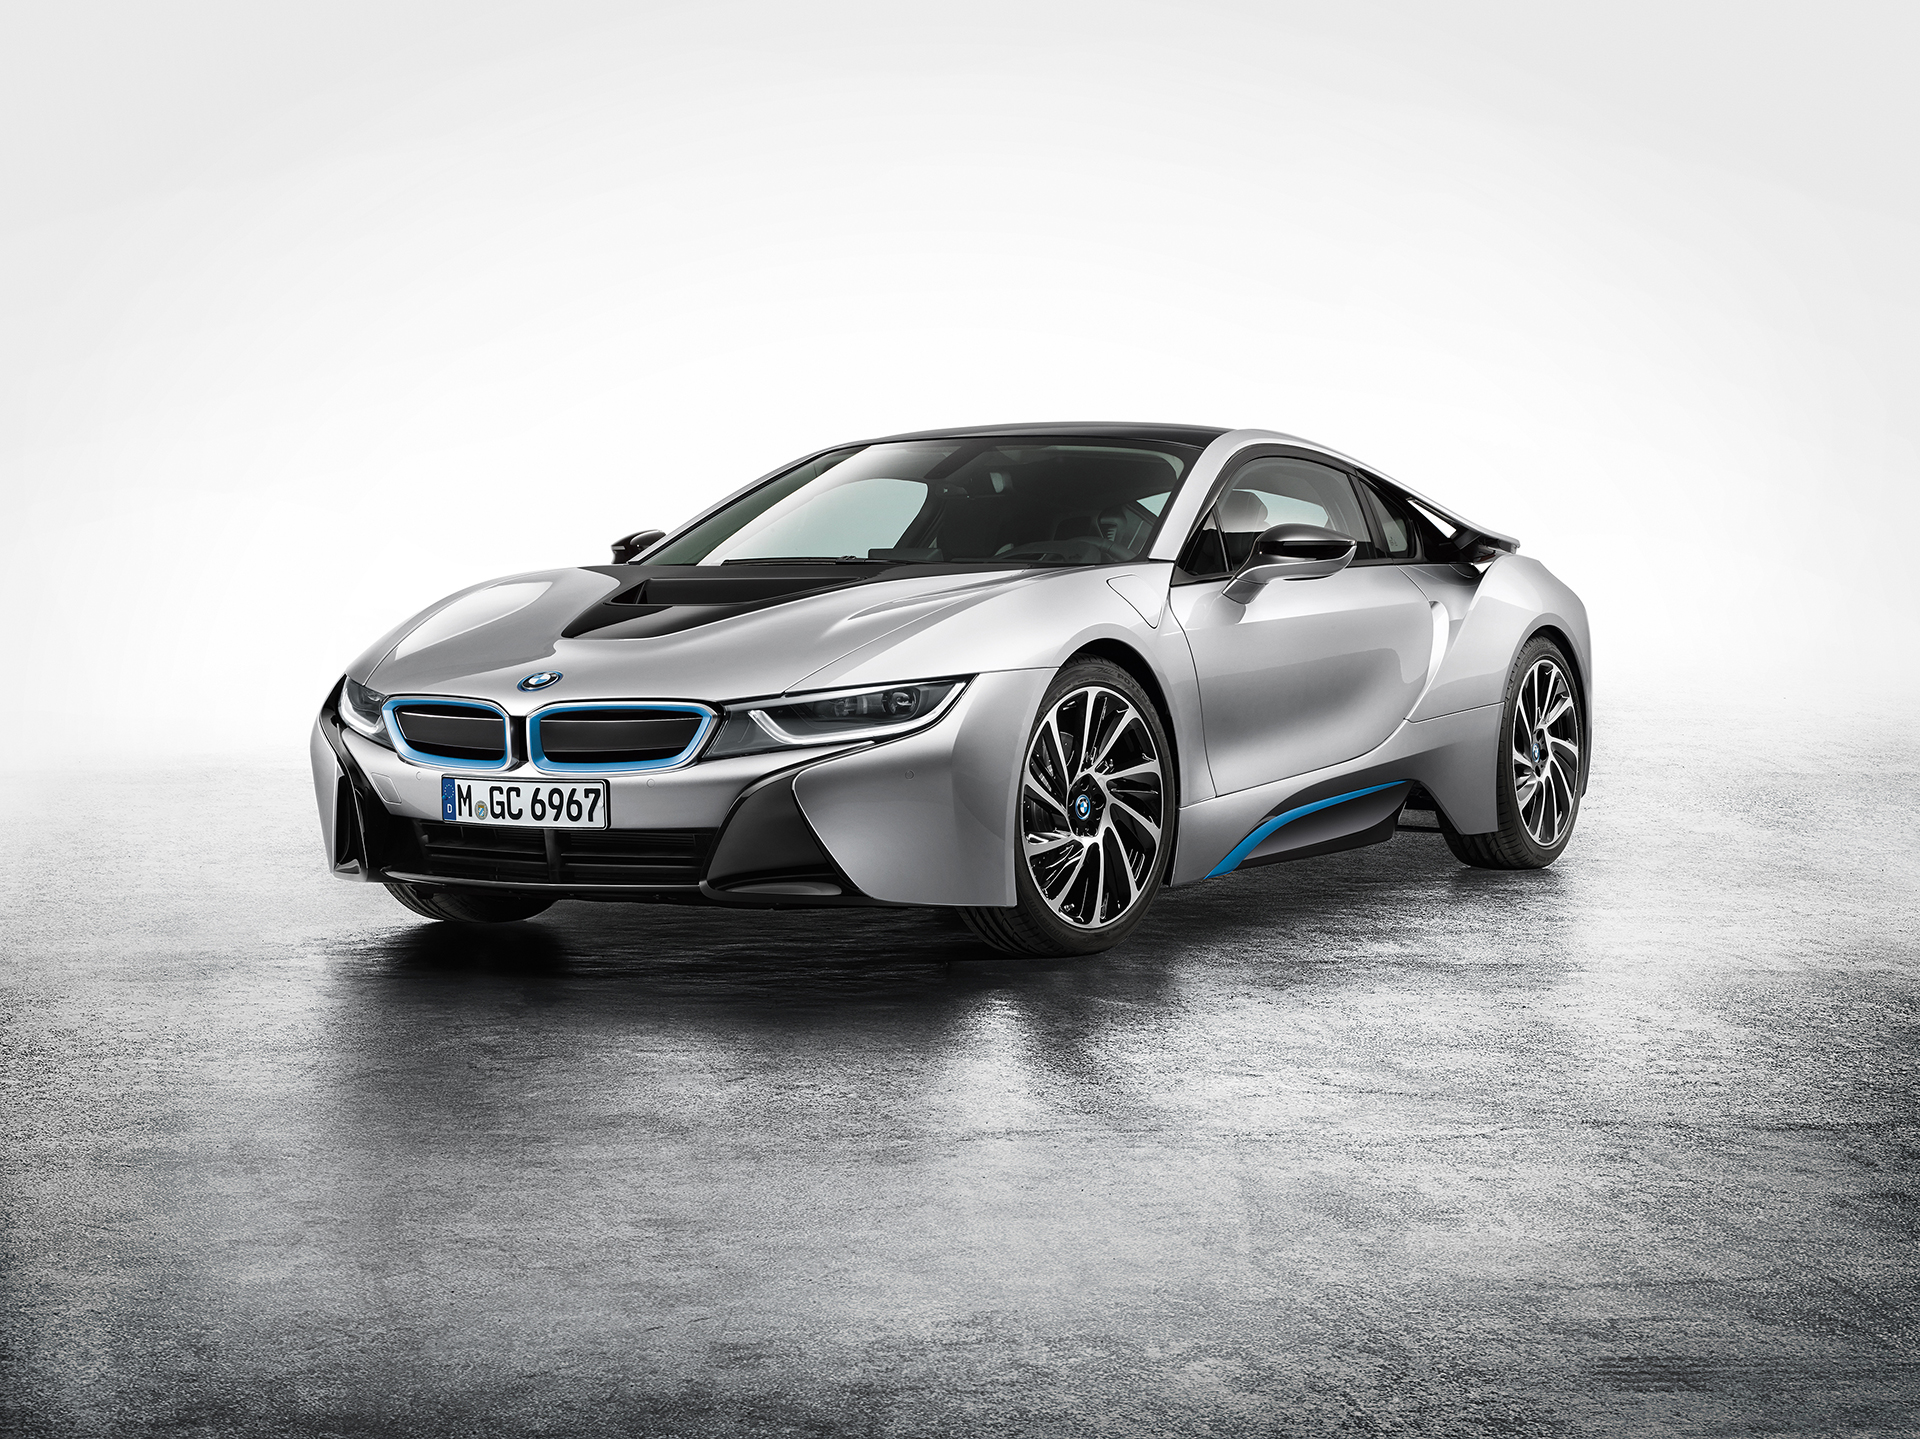 BMW i8 - front side-face / profil avant